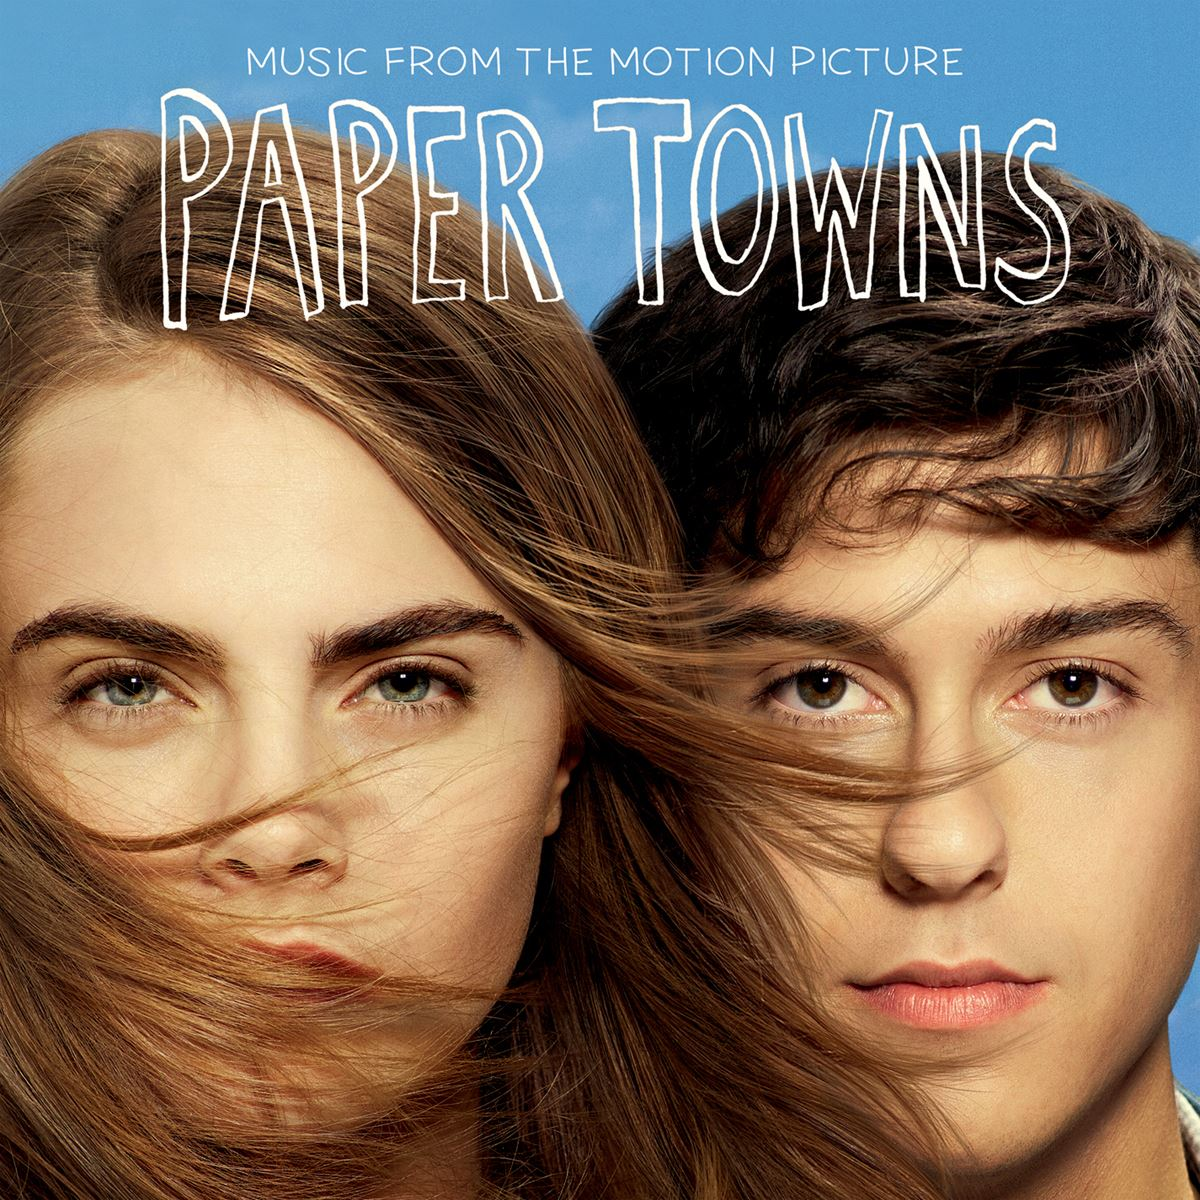 Cd paper towns music from the montion picture  - Sanborns